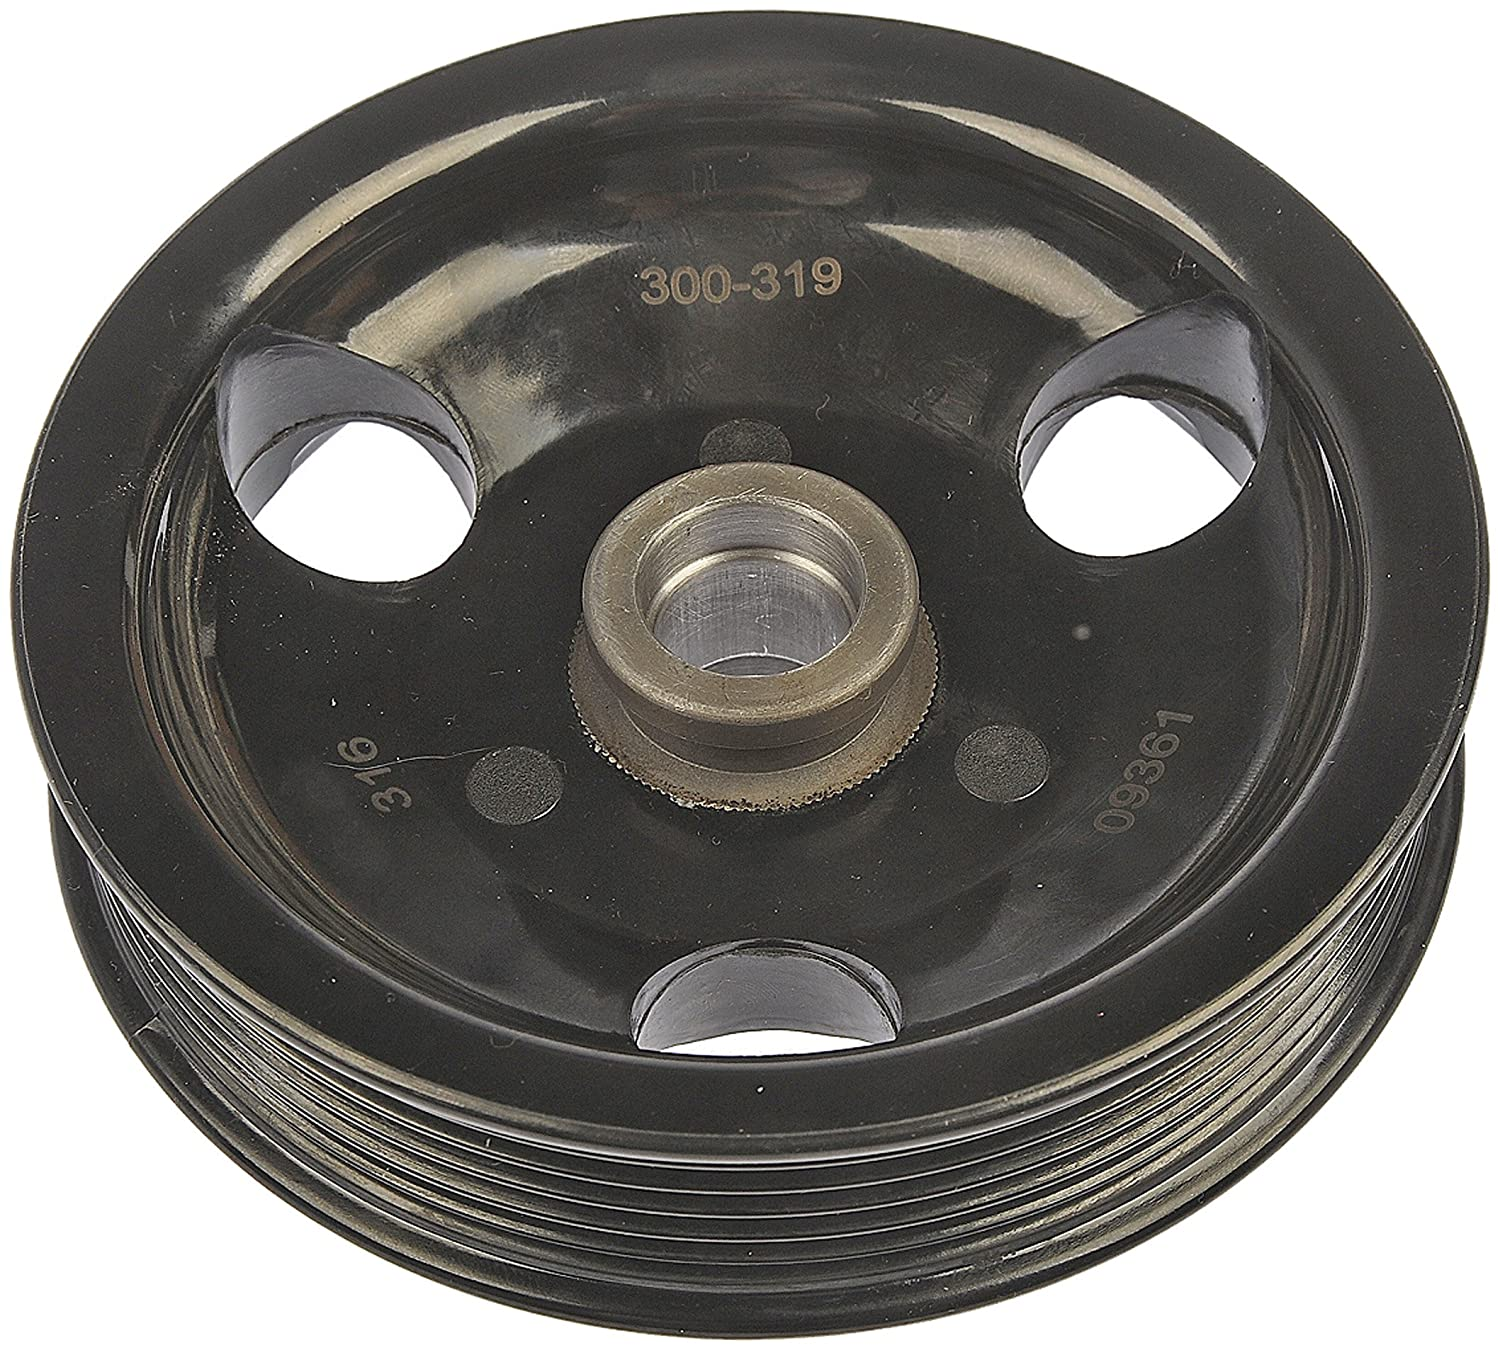 Dorman 300-319 Chrysler/Dodge Power Steering Pully Dorman - OE Solutions